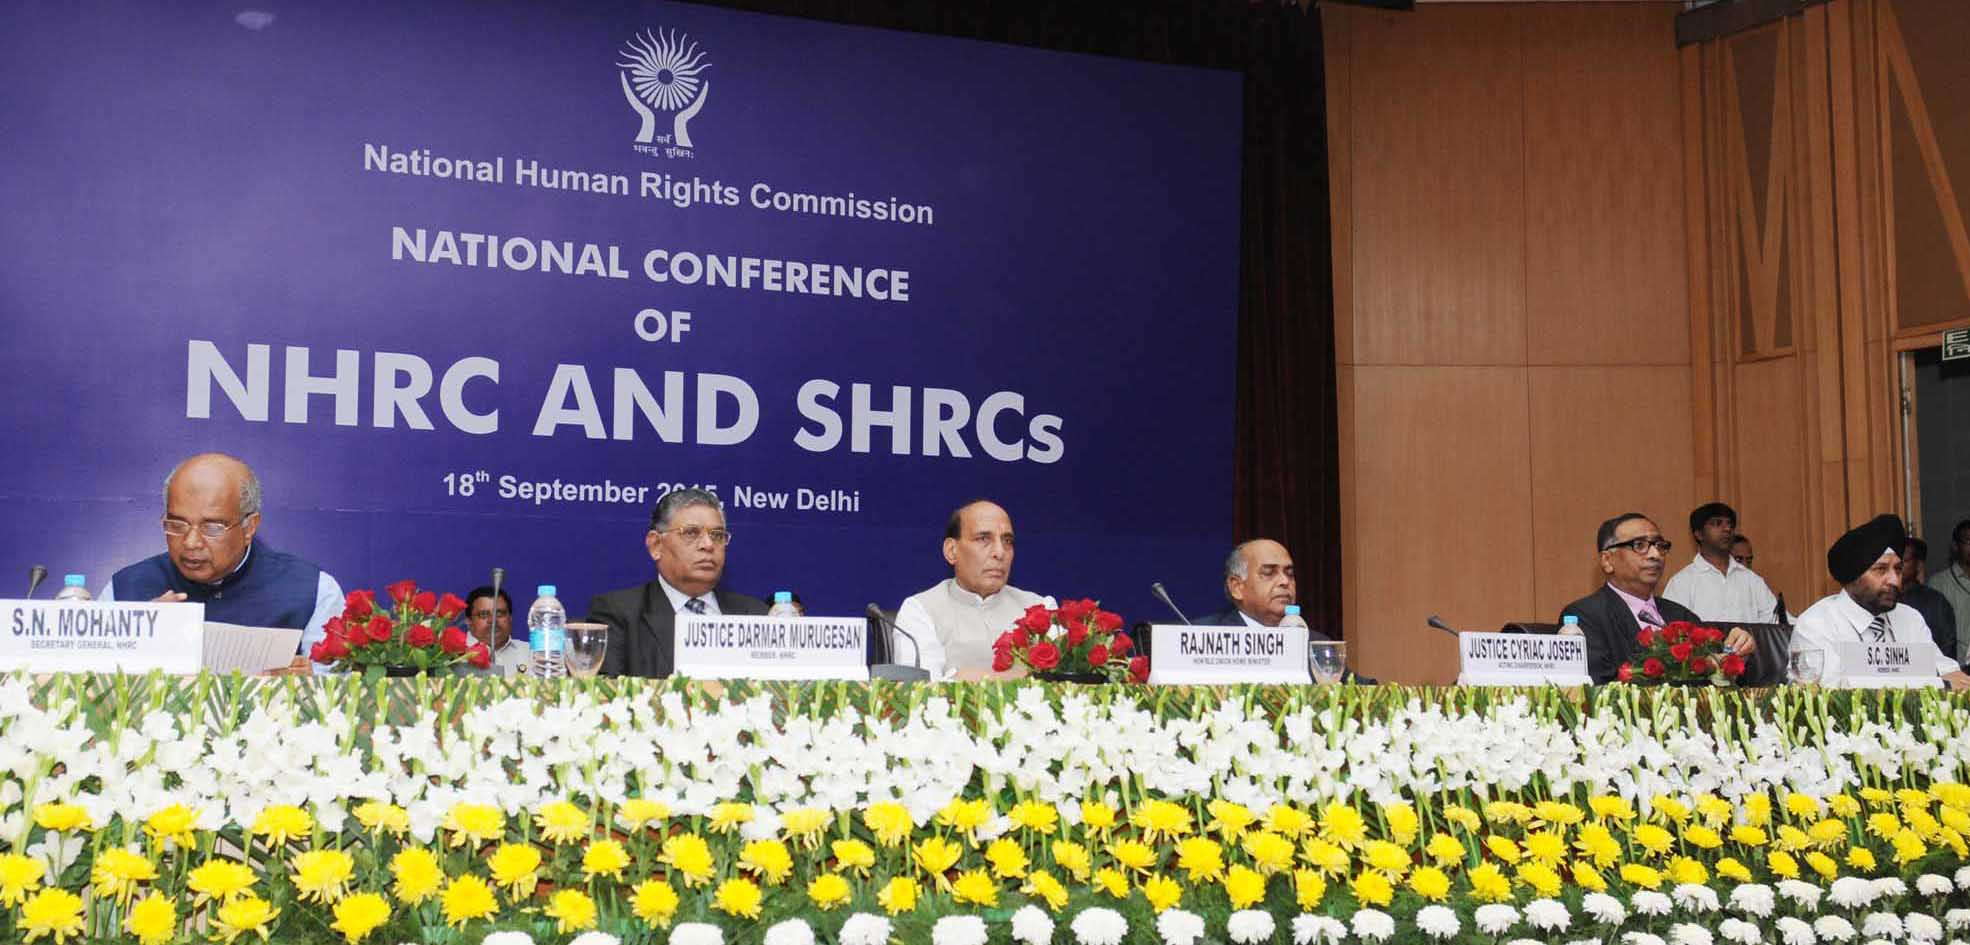 The Union Home Minister, Shri Rajnath Singh at the inauguration at a Conference of the National Human Rights Commission (NHRC) and the State Human Rights Commissions (SHRCs), in New Delhi on September 18, 2015.